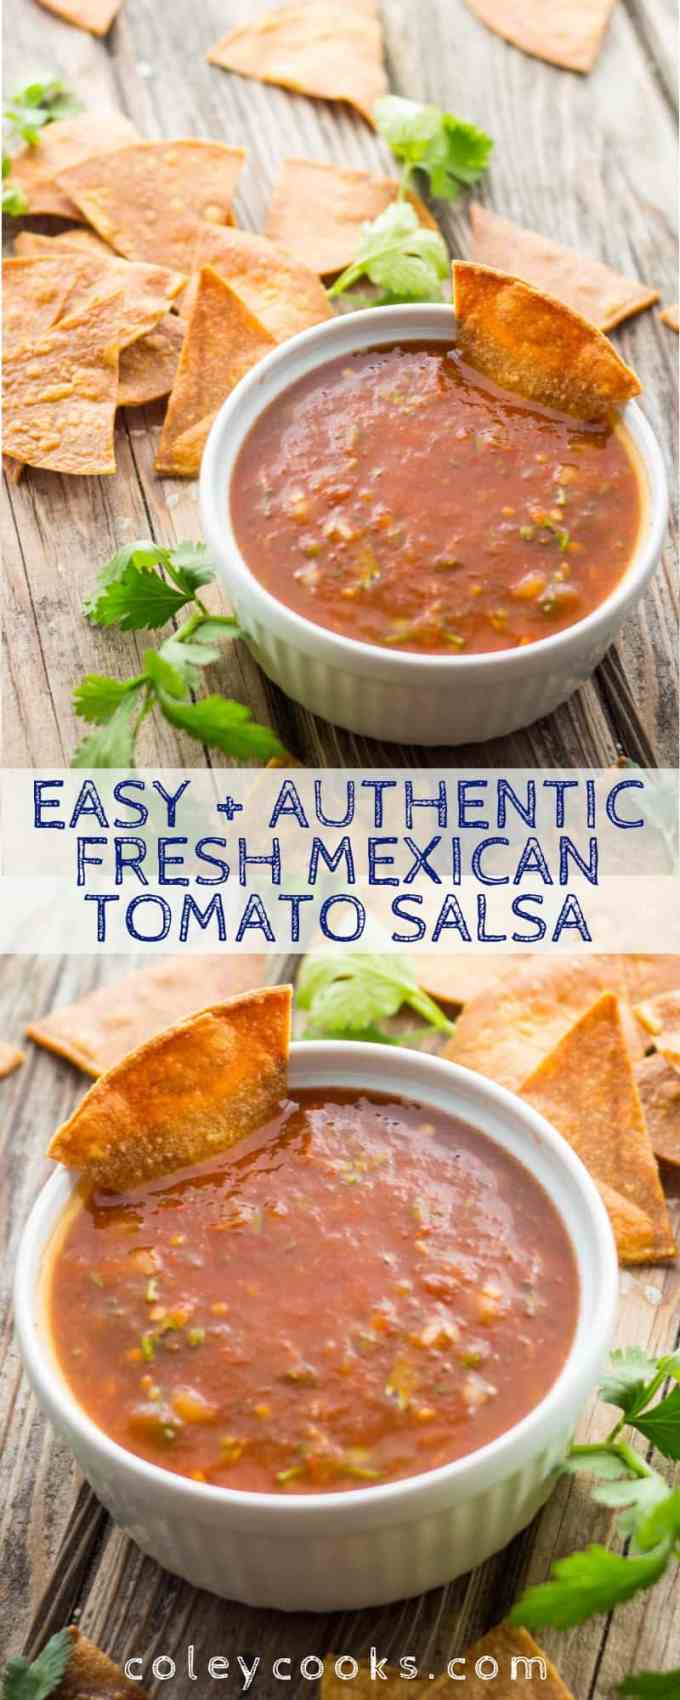 This easy recipe for Mexican Tomato Salsa is an authentic, spicy and flavorful dip for chips or a sauce for your favorite Mexican dish. Great for Cinco de Mayo! #cinco #Mexican #easy #authentic #tomato #spicy #salsa #recipe #chips #dip #snacks   ColeyCooks.com